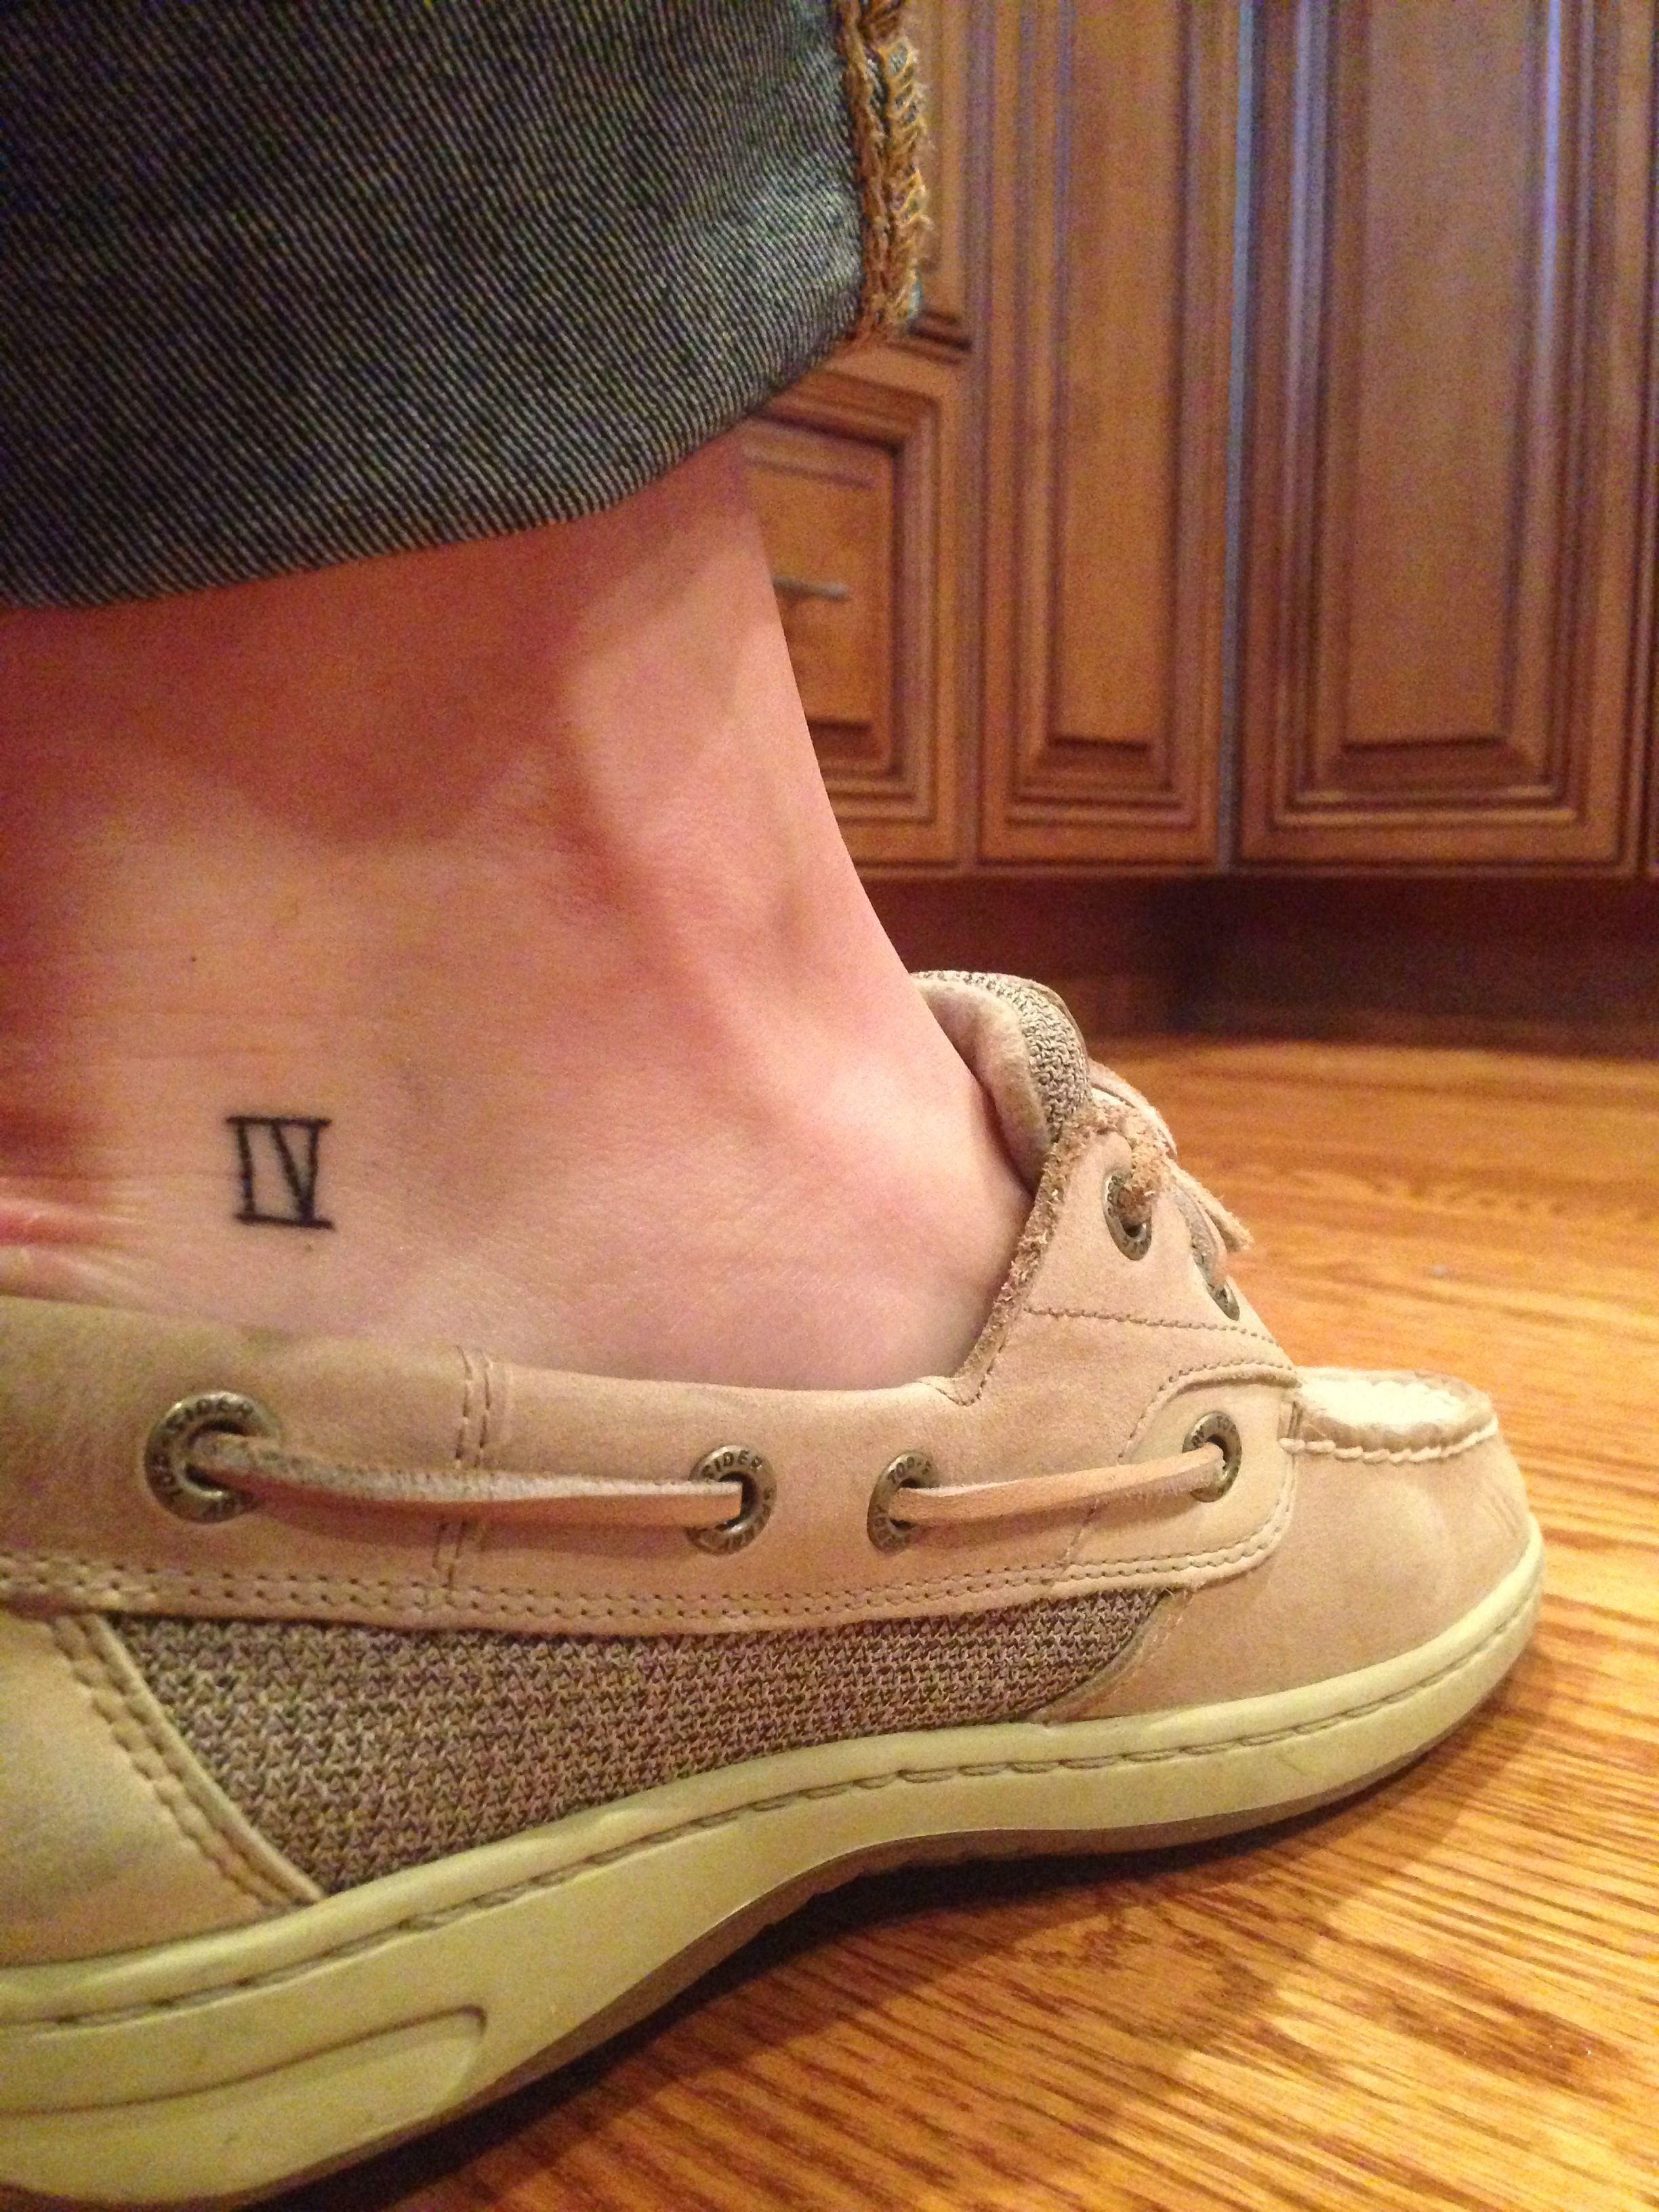 Roman Numeral Tattoos For Guys Small Tattoos Foot Tattoos For Women